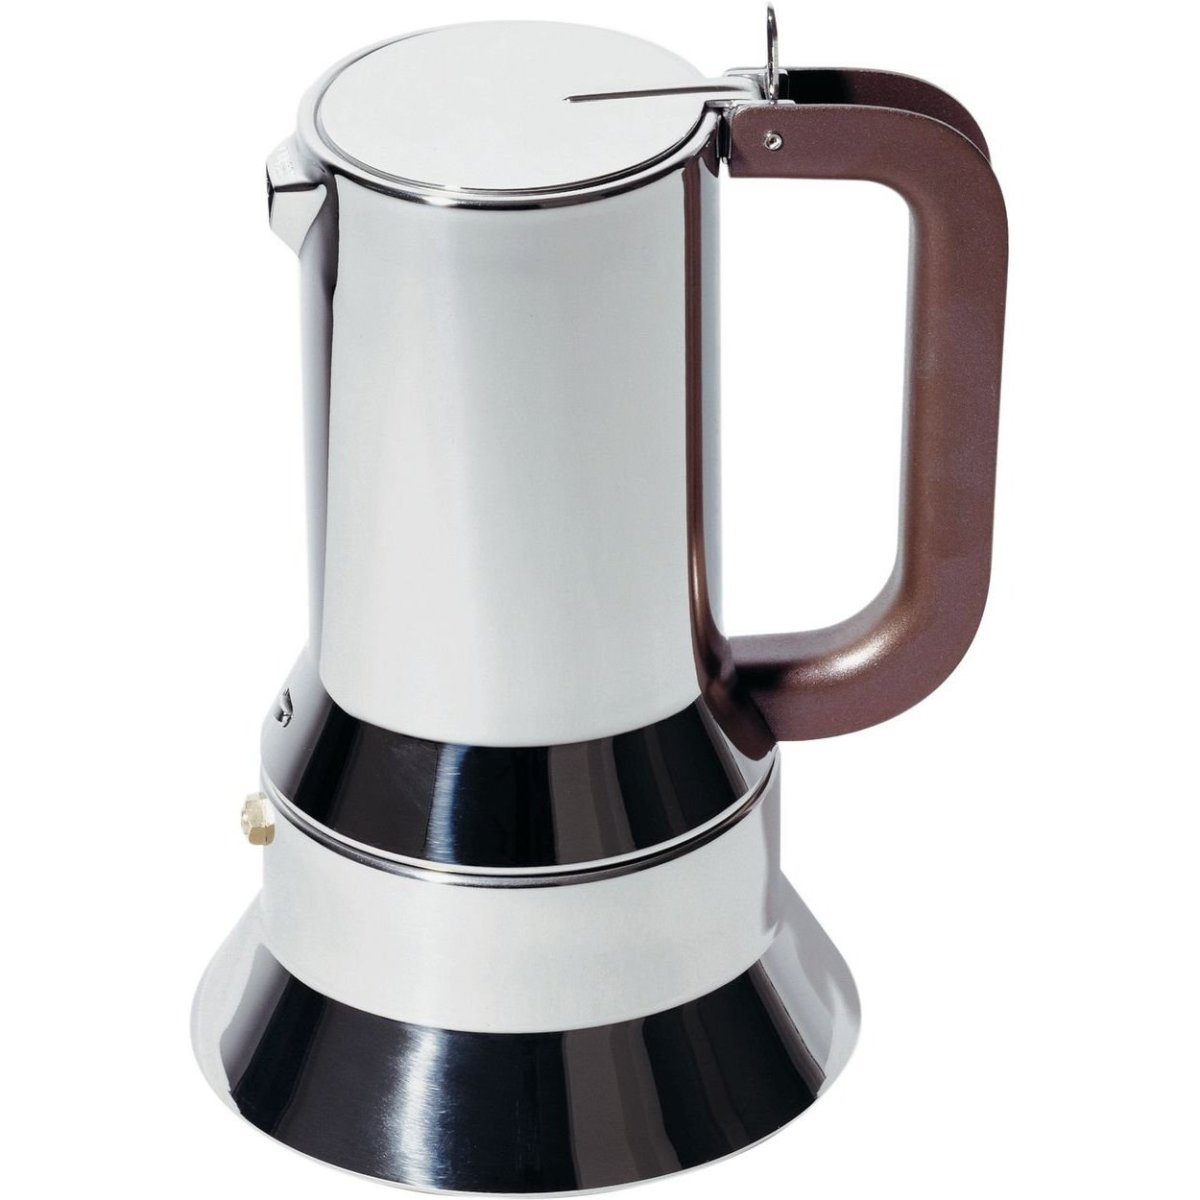 Stainless steel stovetop espresso maker 10 cup - Stainless Steel Stovetop Espresso Maker 10 Cup 30